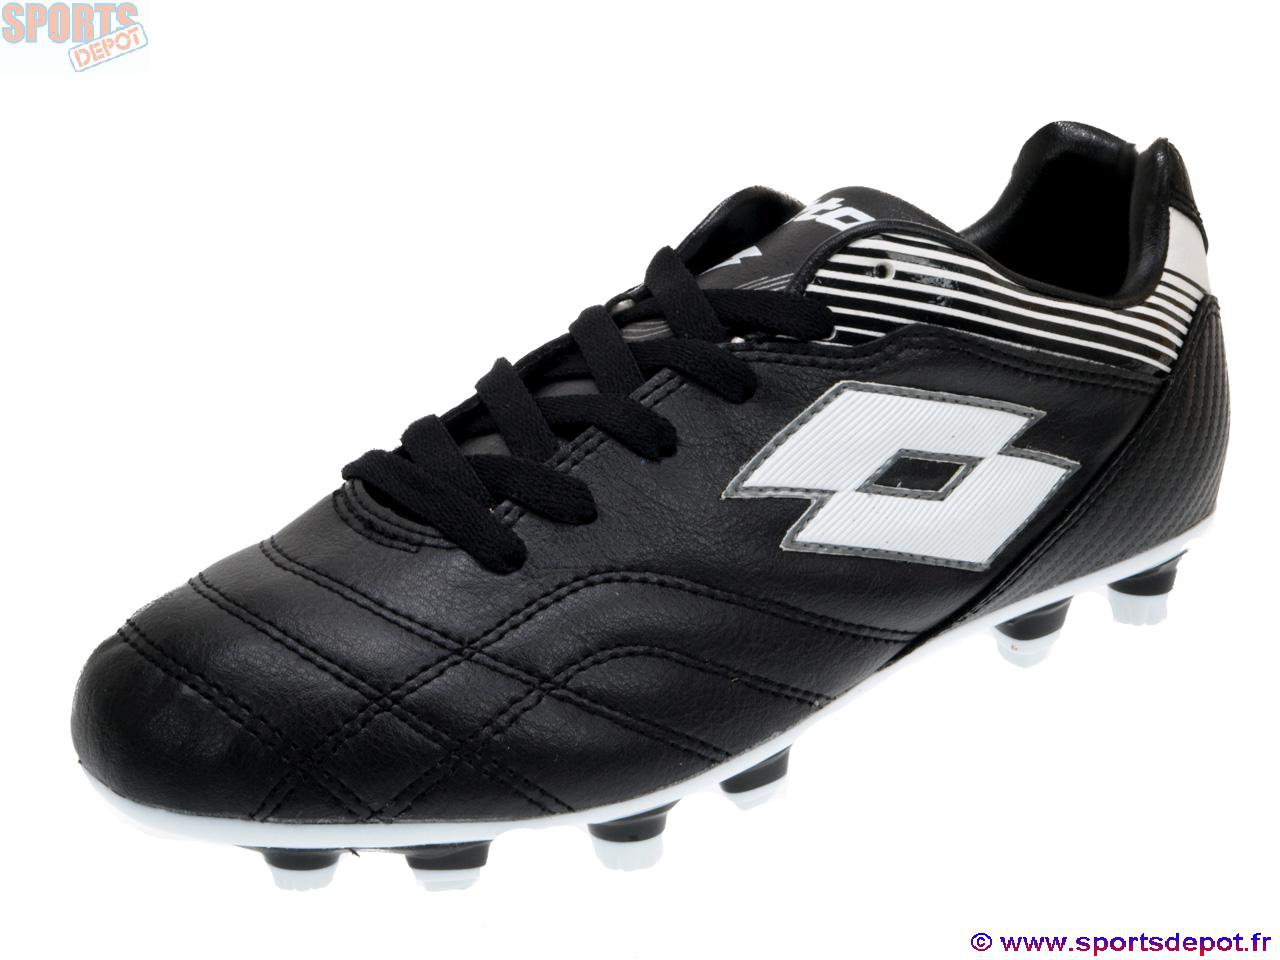 Rugby Chaussures Entre Foot Difference Et rtsQohdCxB